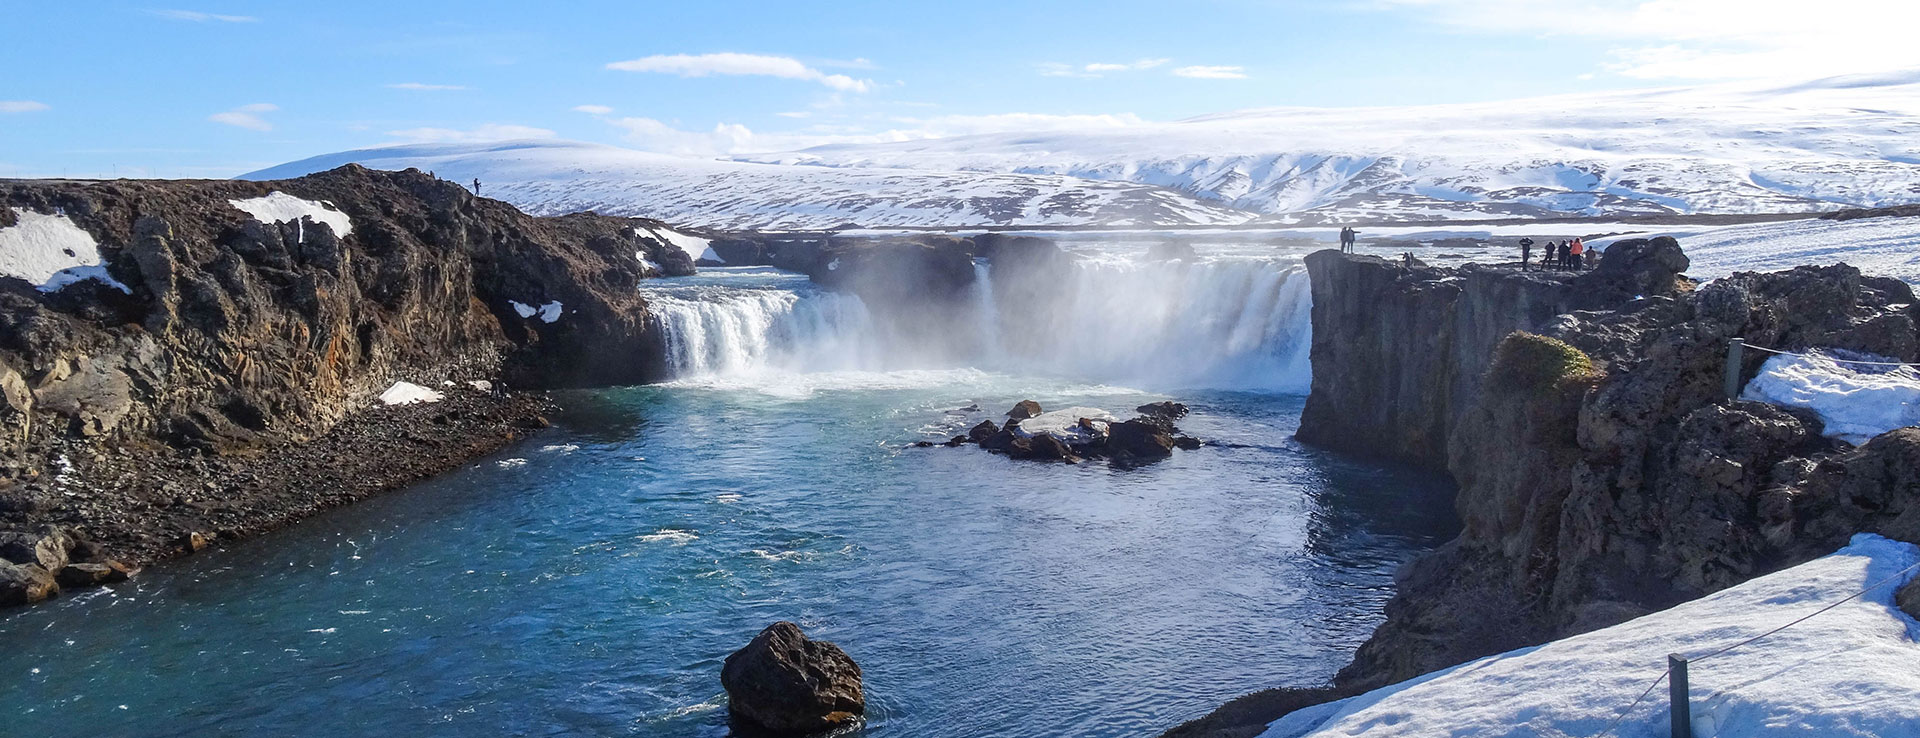 Iceland – our 9 day itinerary trough this dramatic landscape